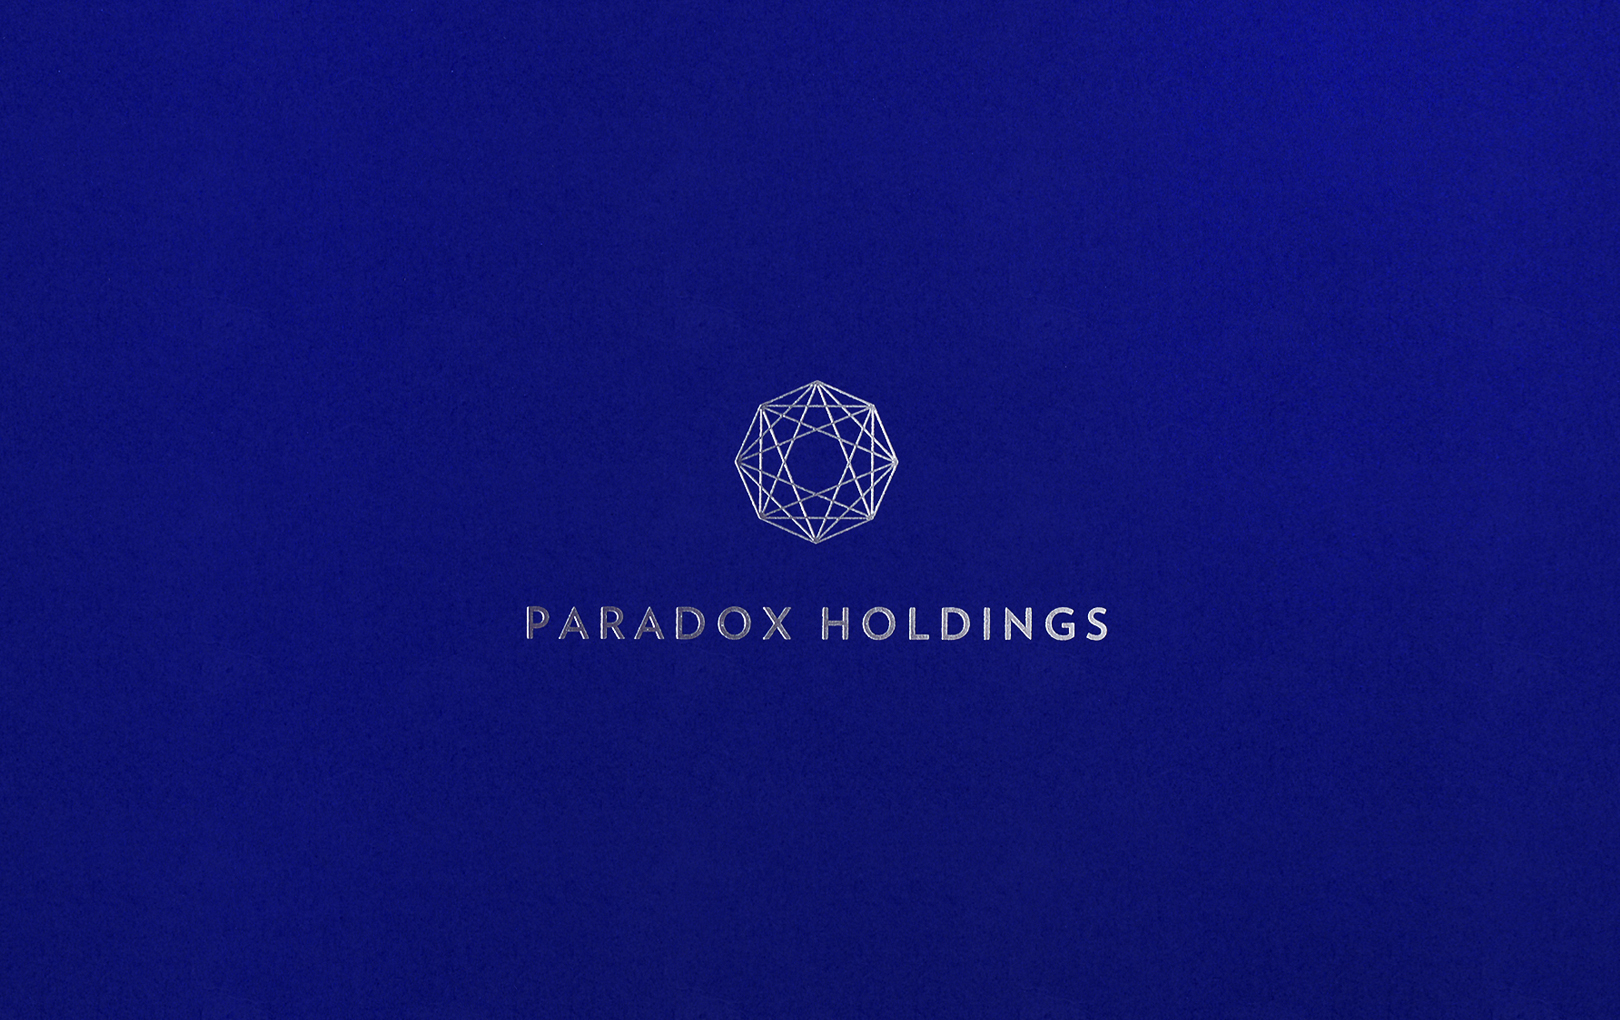 Paradox Holdings